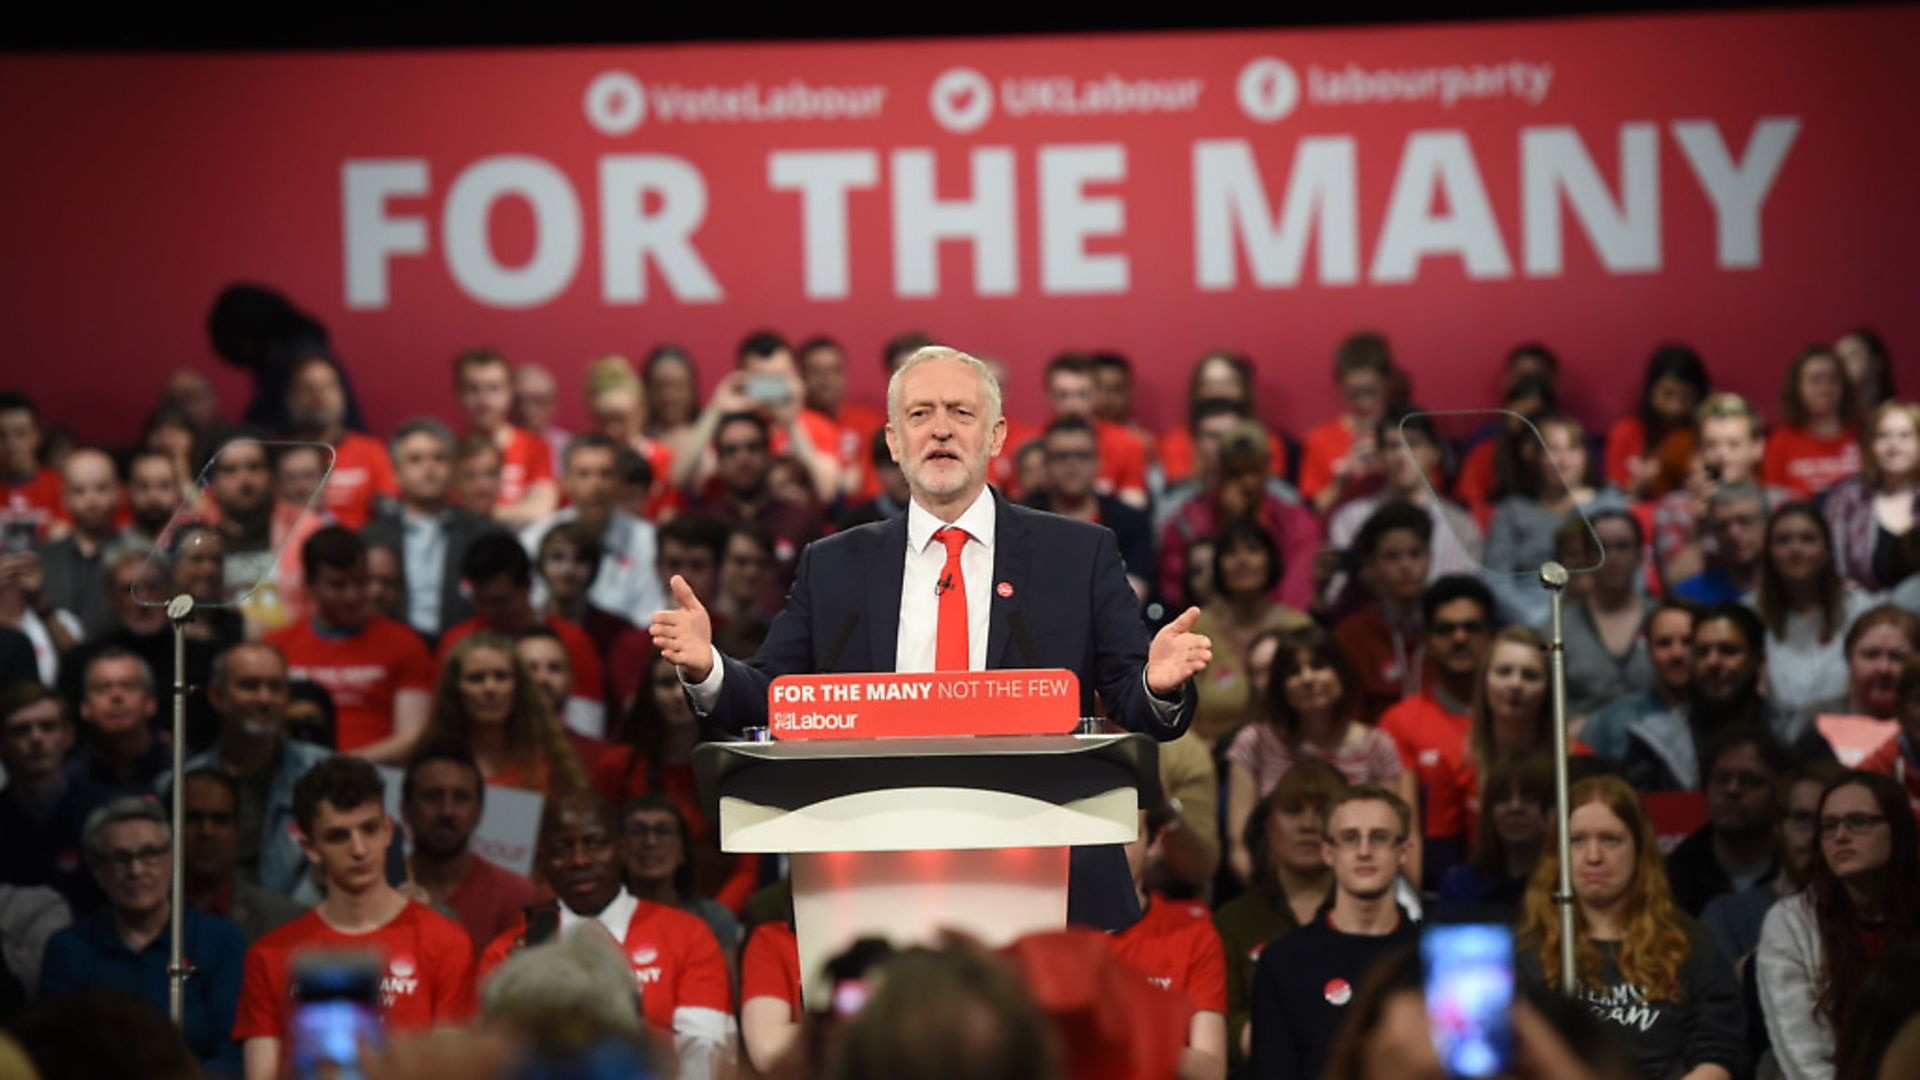 Labour leader Jeremy Corbyn speaking in front of supporters. Photograph: Joe Giddens/PA. - Credit: PA Archive/PA Images